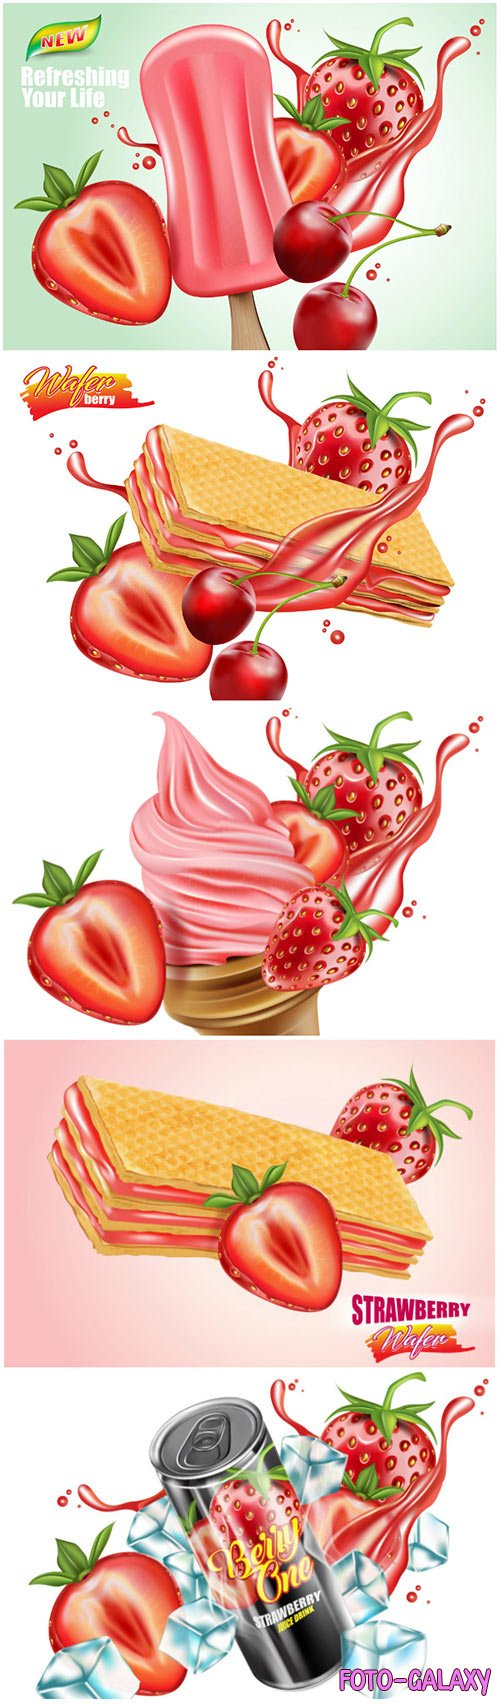 Food concept advertising, realistic vector 3D illustration